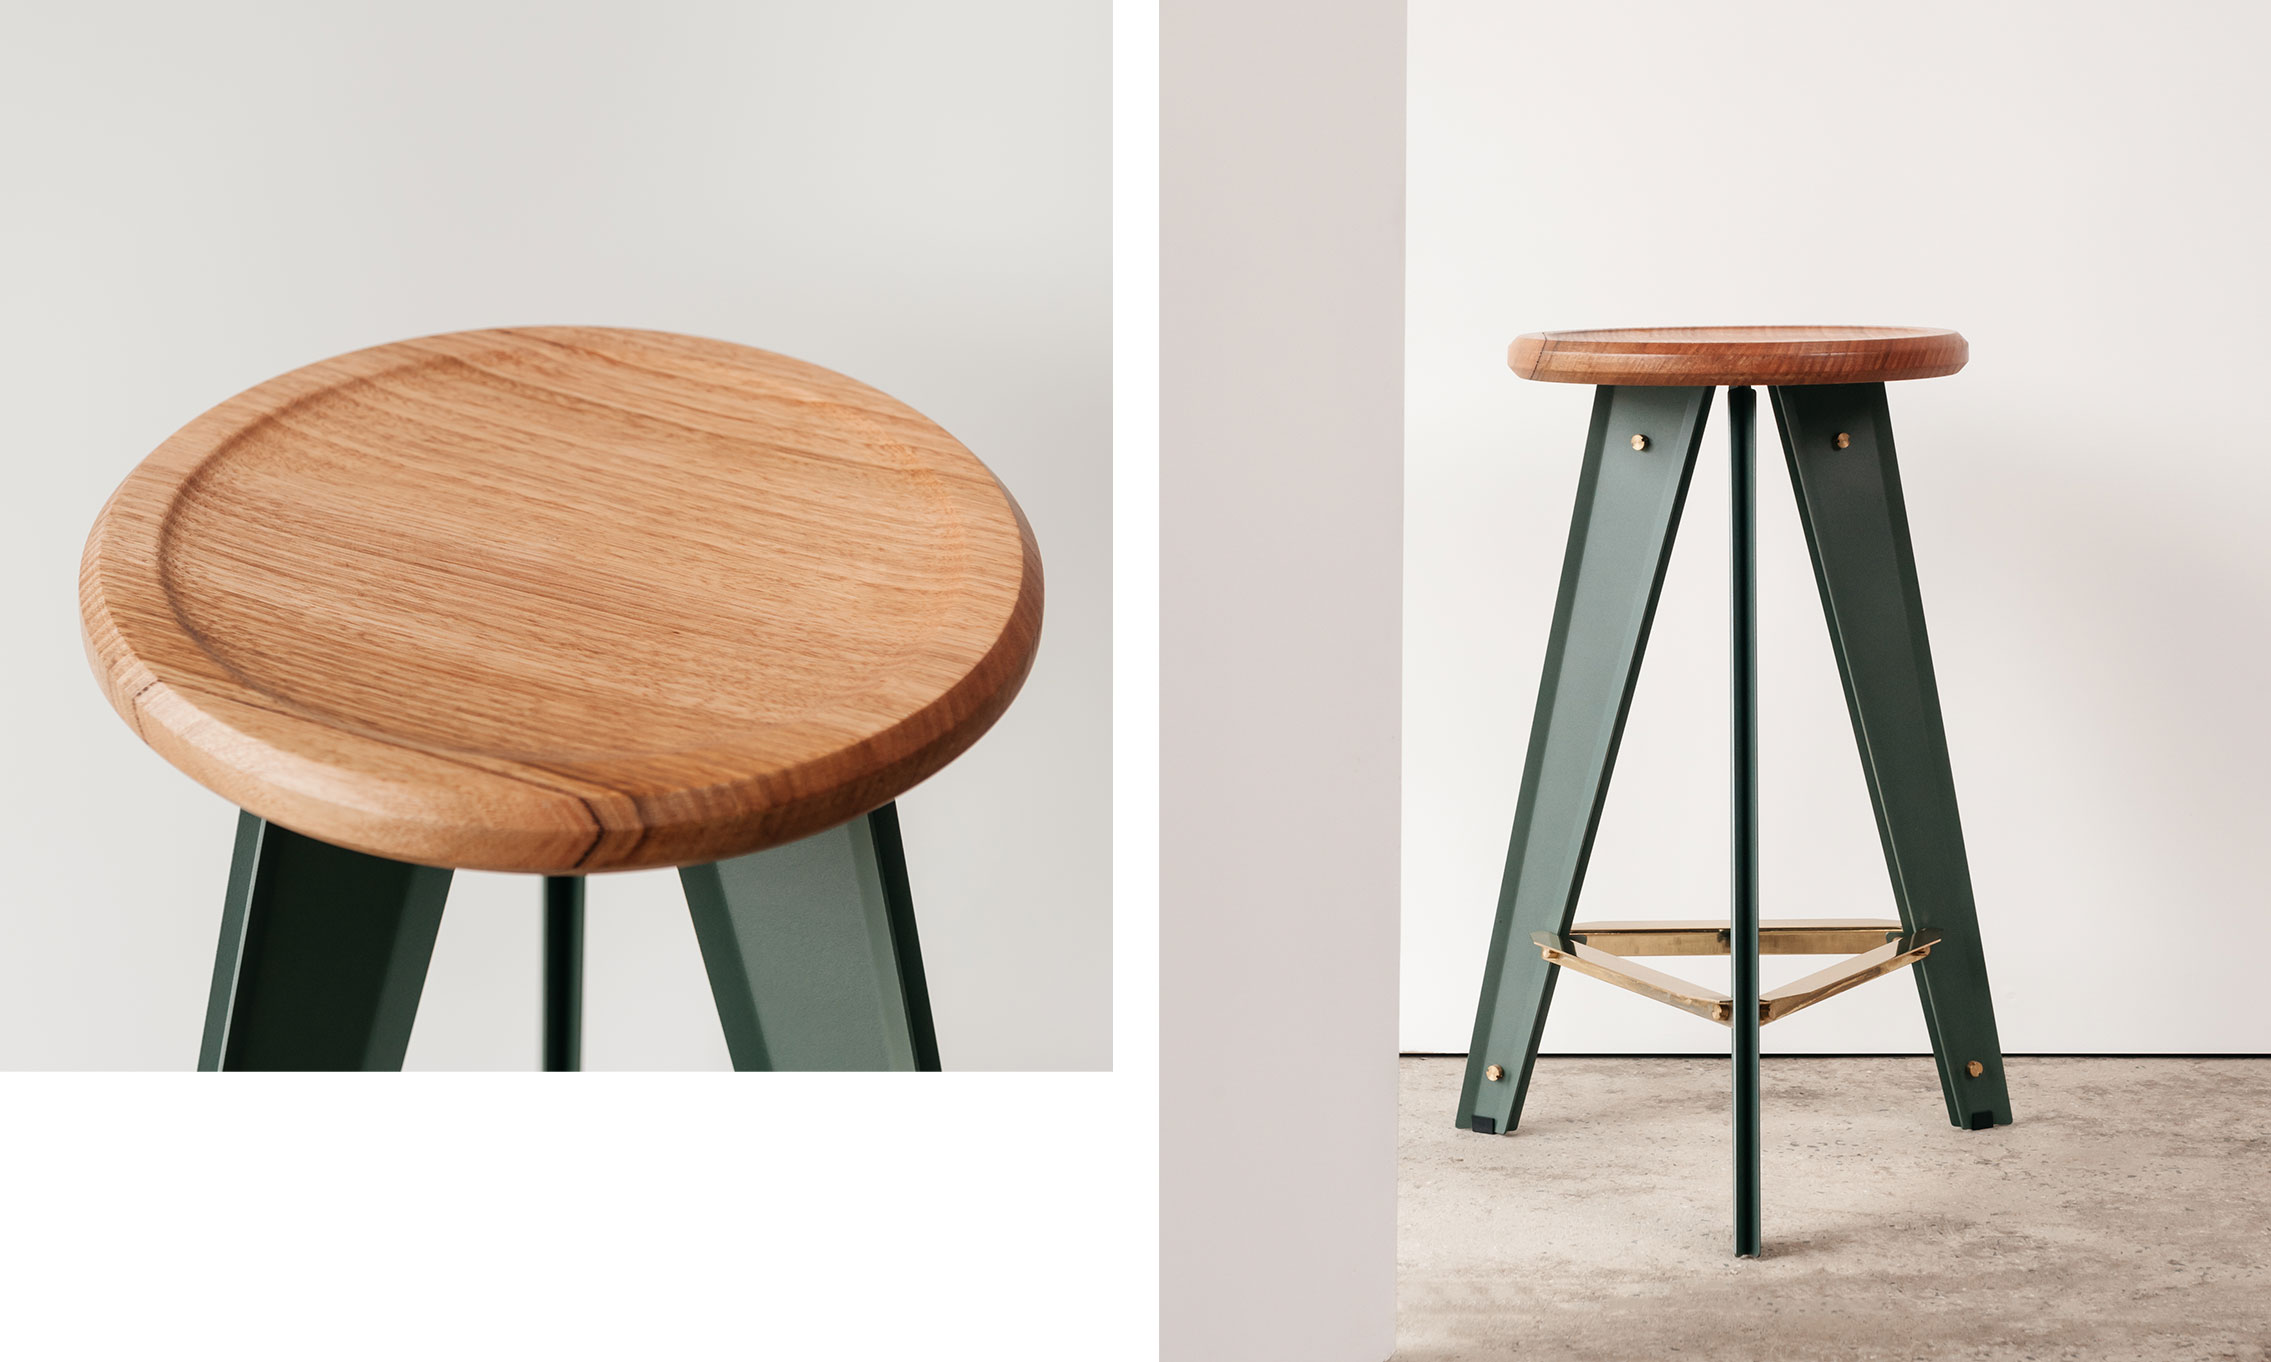 LifeSpaceJourney Crease Stool